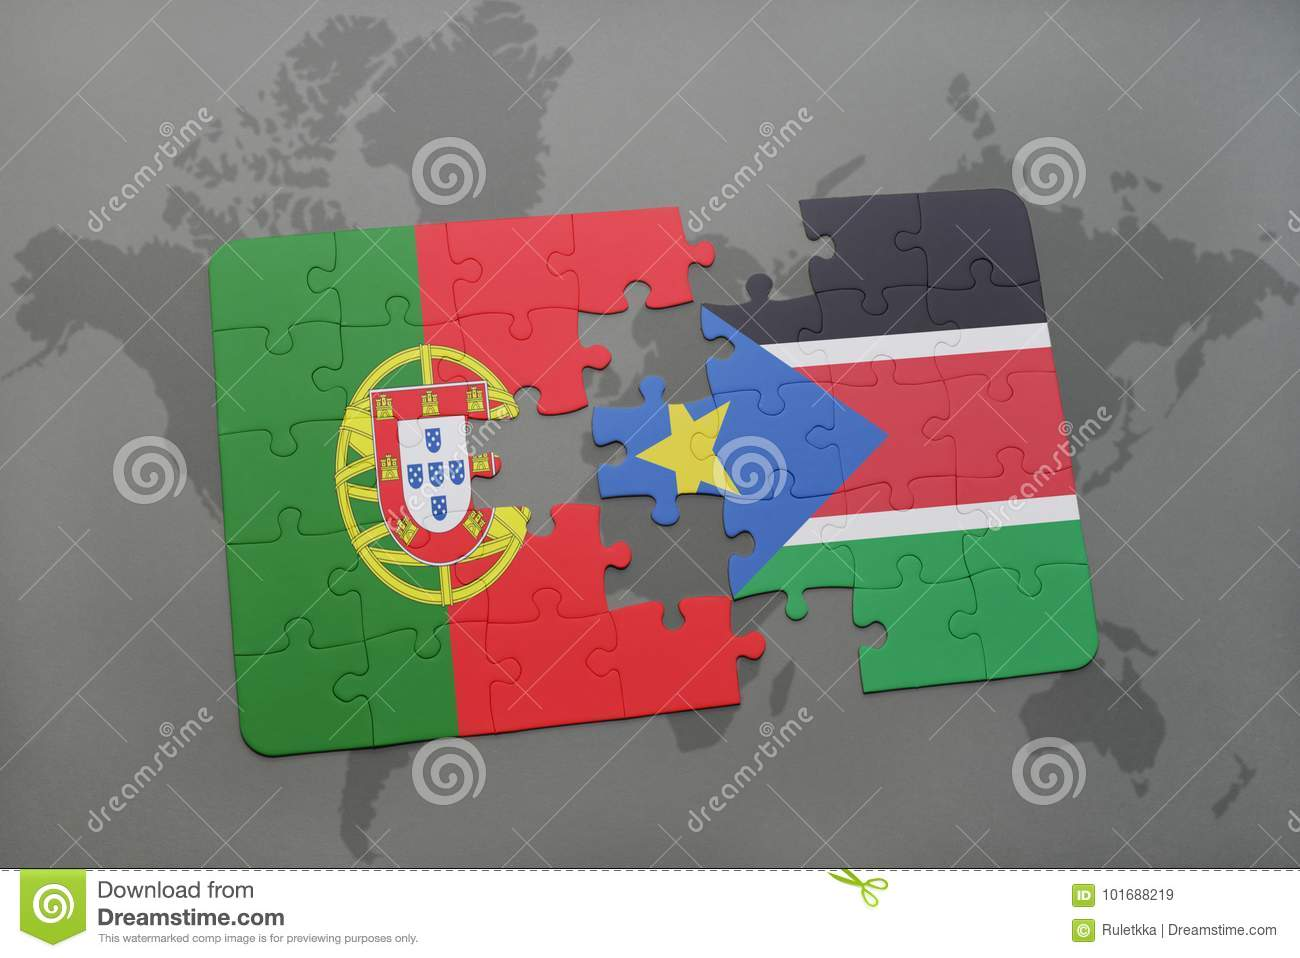 Puzzle With The National Flag Of Portugal And South Sudan On A World ...